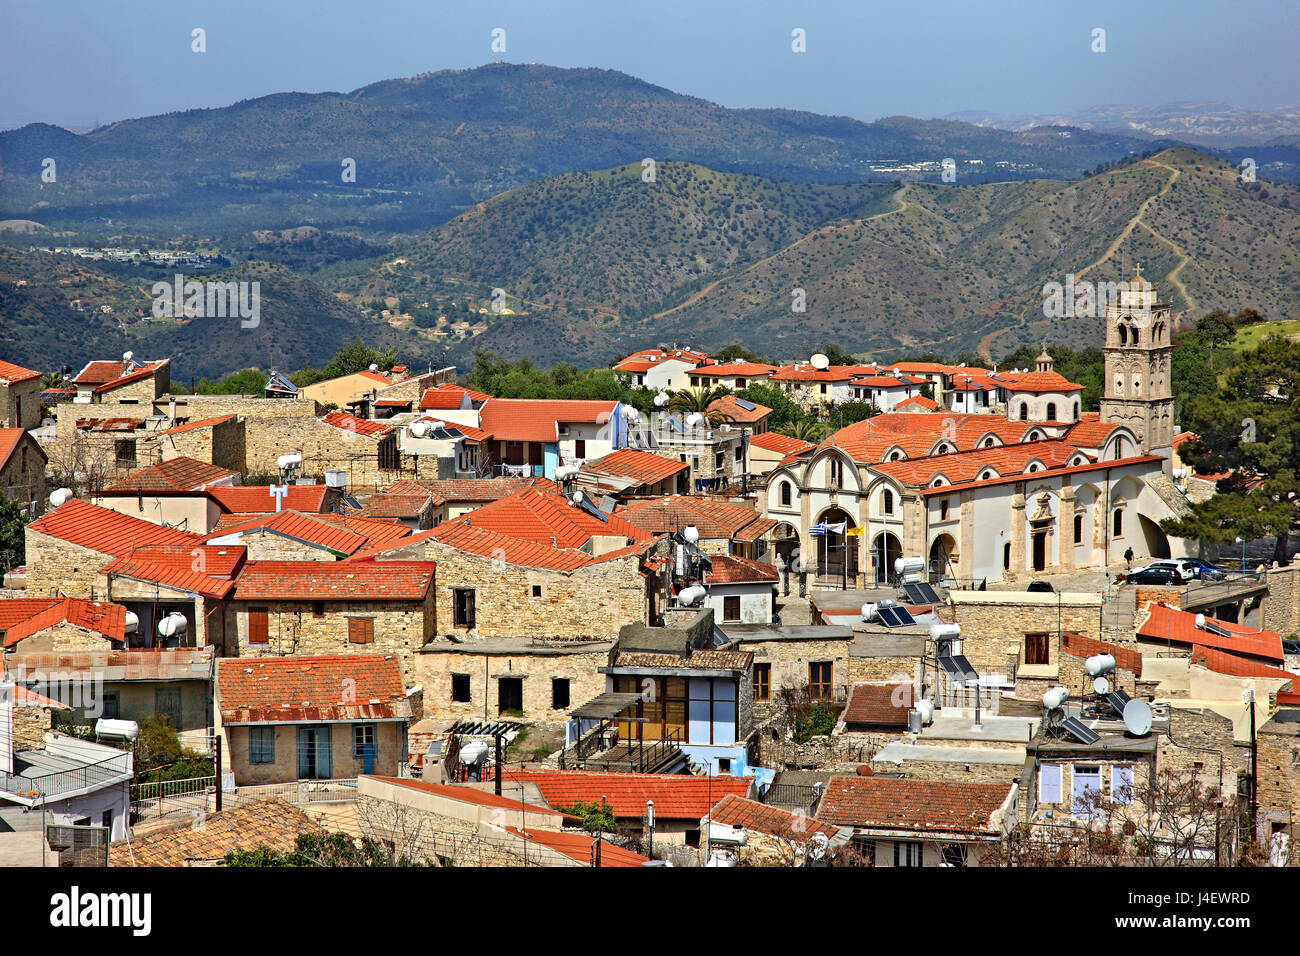 Pano Lefkara, one of the traditional 'Lace and embroidery villages', Larnaca district, Cyprus island. - Stock Image